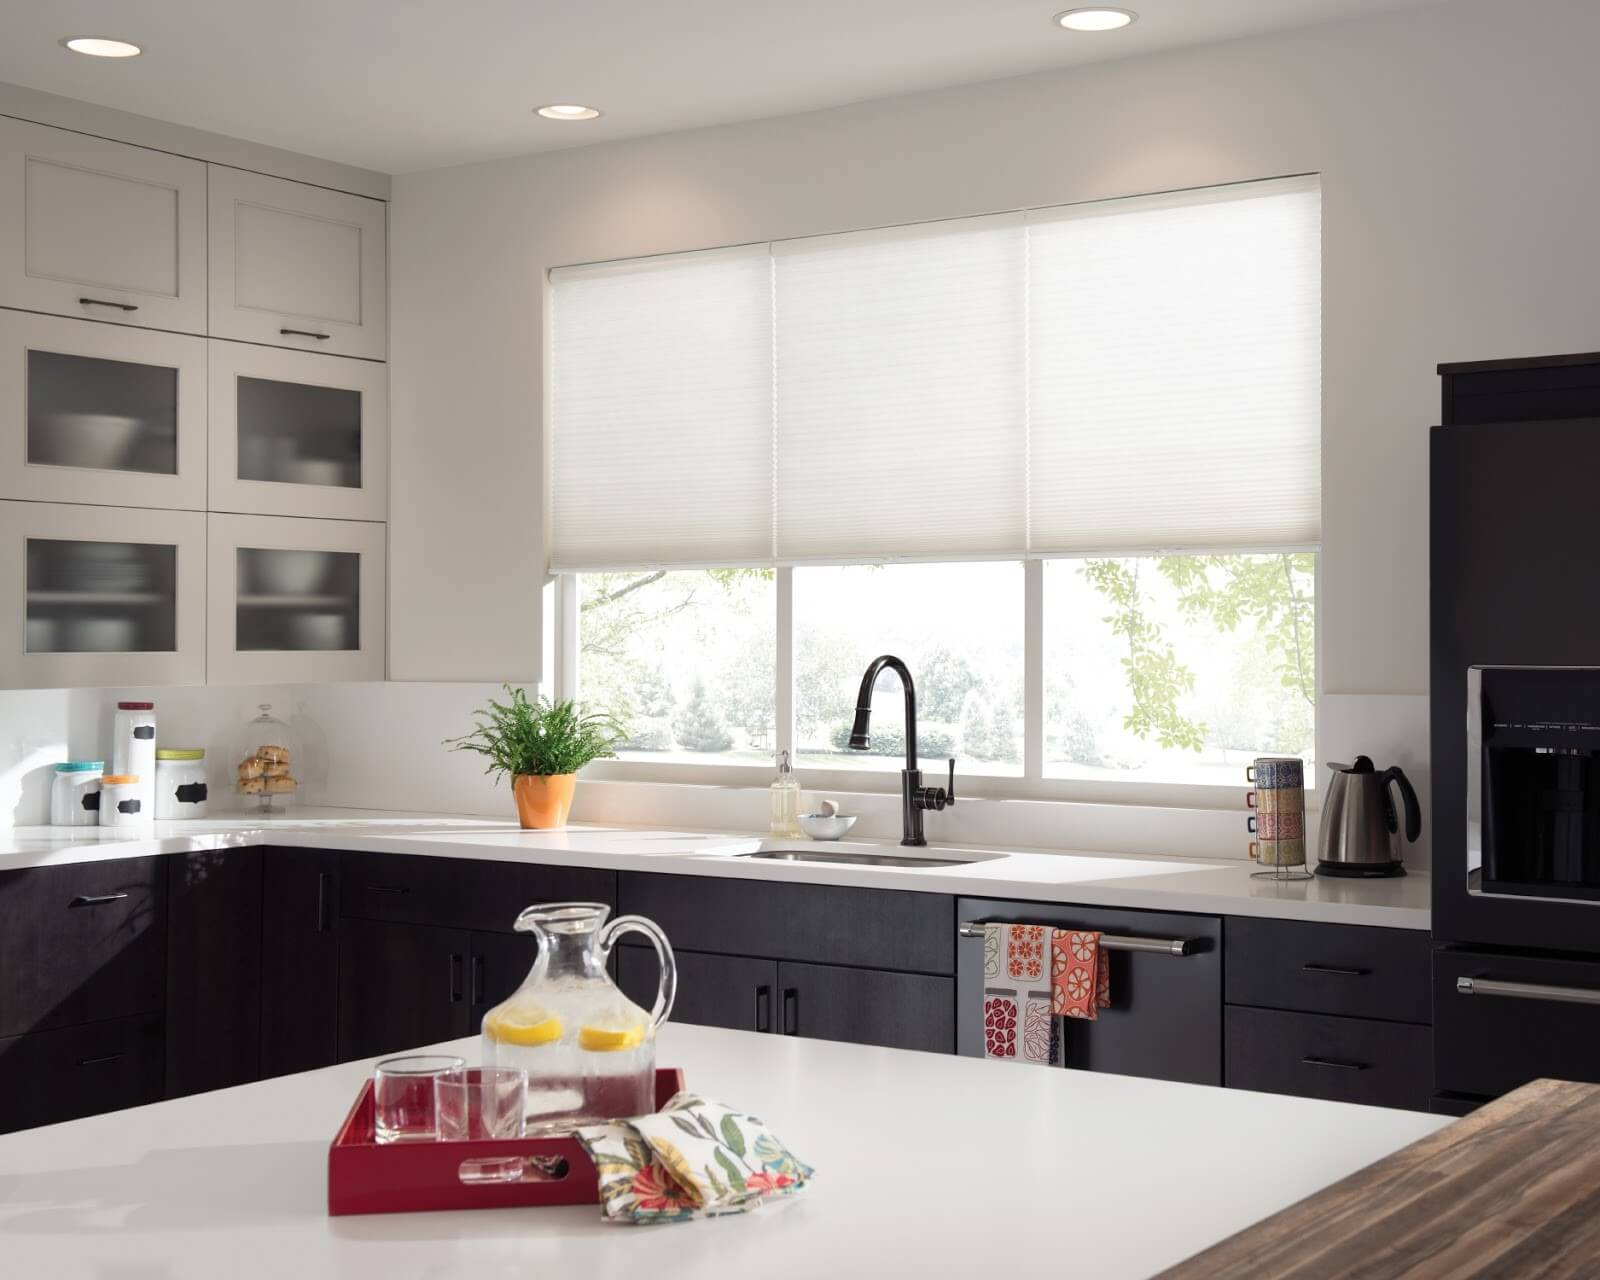 Budget Blinds & Kitchen Window Treatments That Will Wow Your Guests This ...